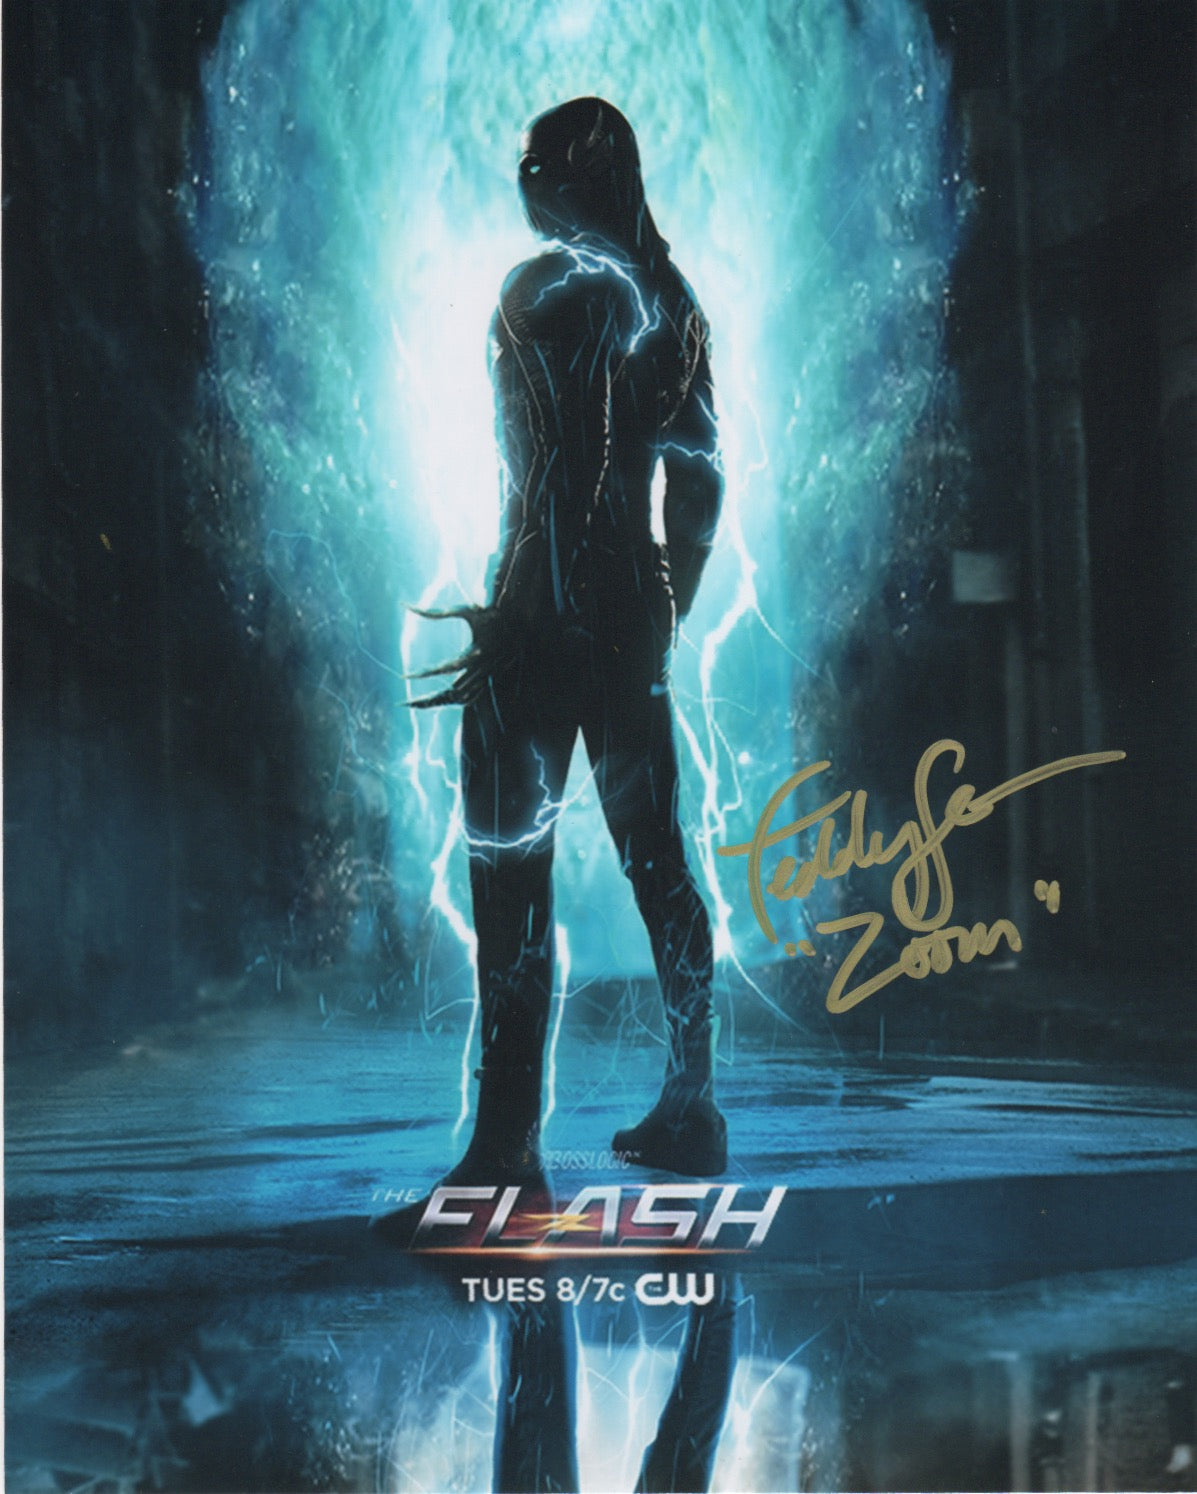 Teddy Sears The Flash Signed Autograph Zoom 8x10 Photo #3 - Outlaw Hobbies Authentic Autographs